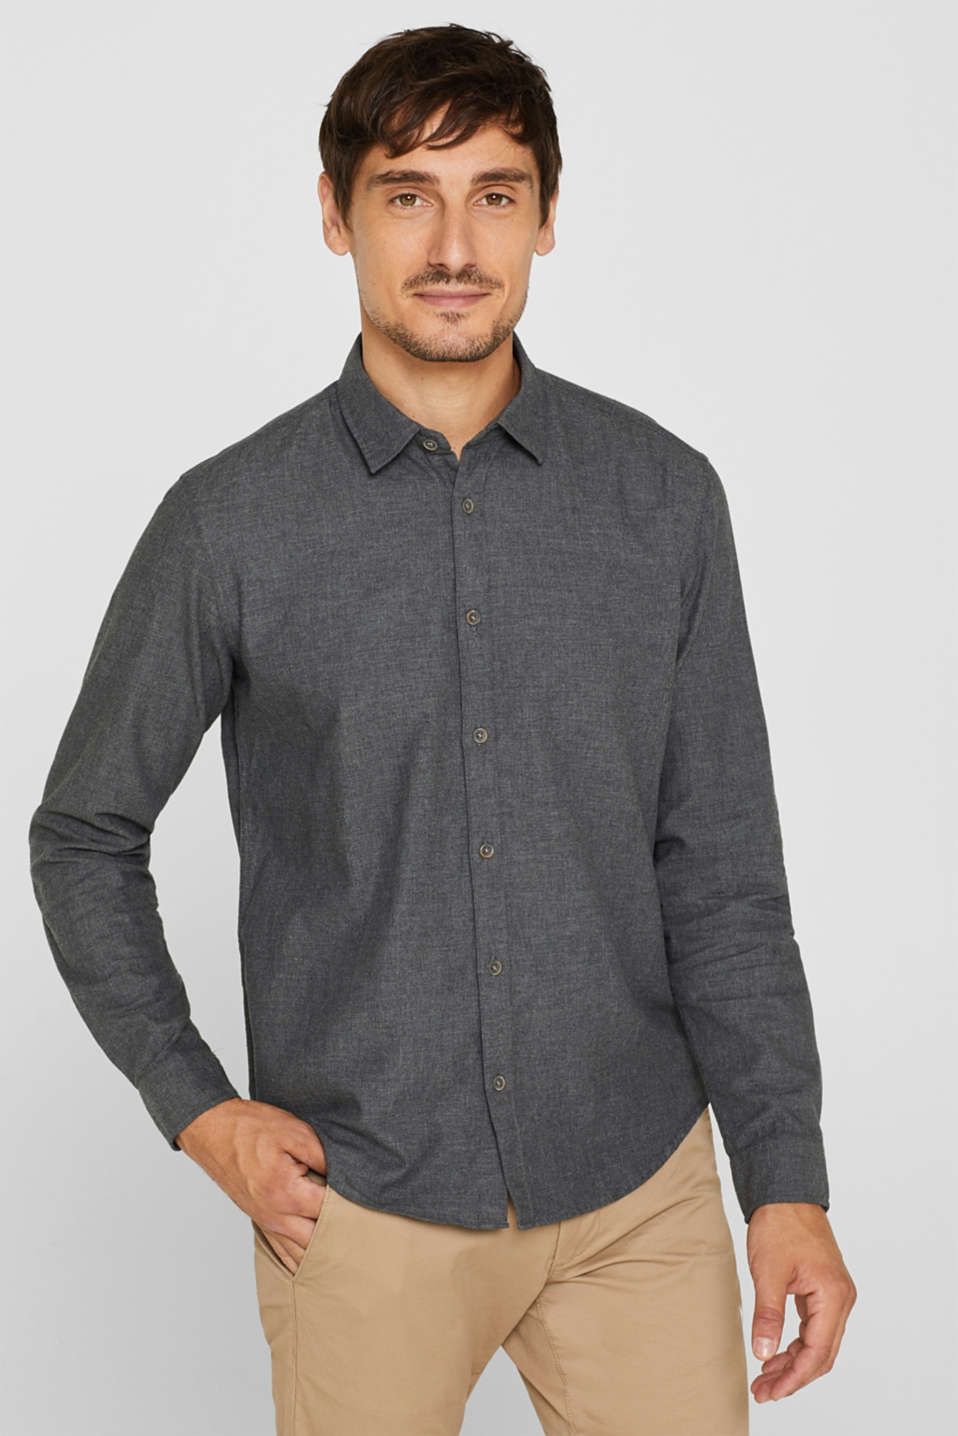 Esprit - Softly brushed shirt made of 100% cotton